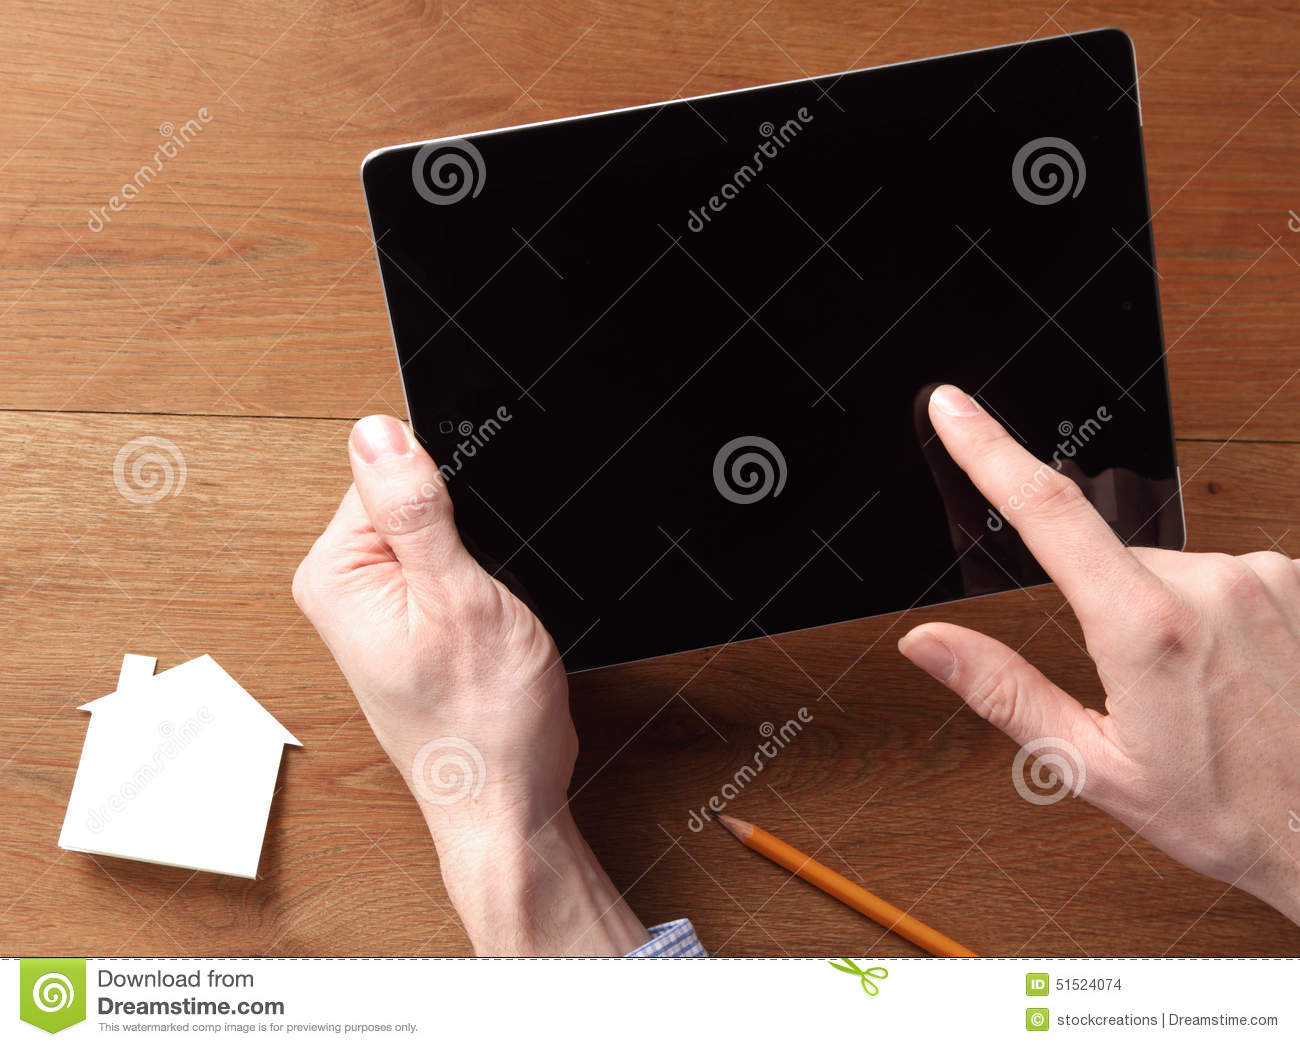 how to get his tablet screen on the computer